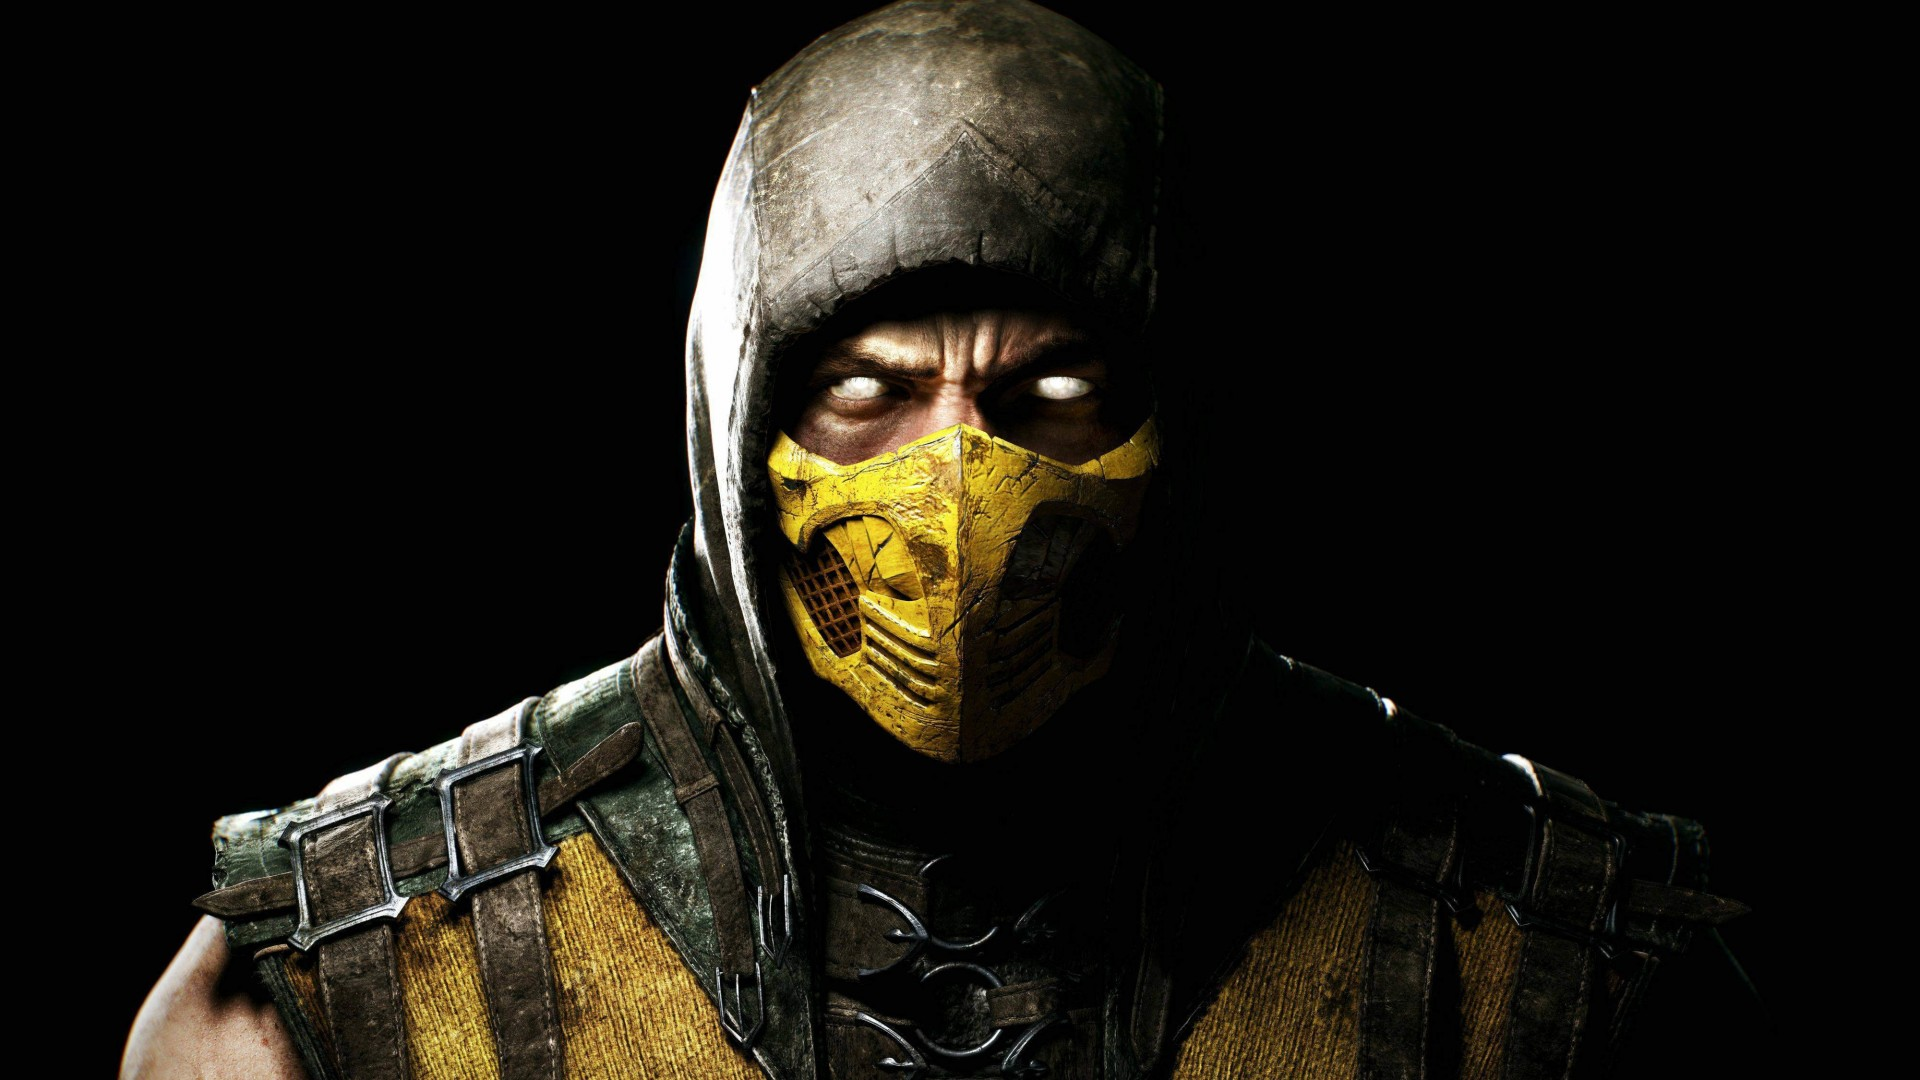 Scorpion Mortal Kombat X Wallpaper for Desktop 1920x1080